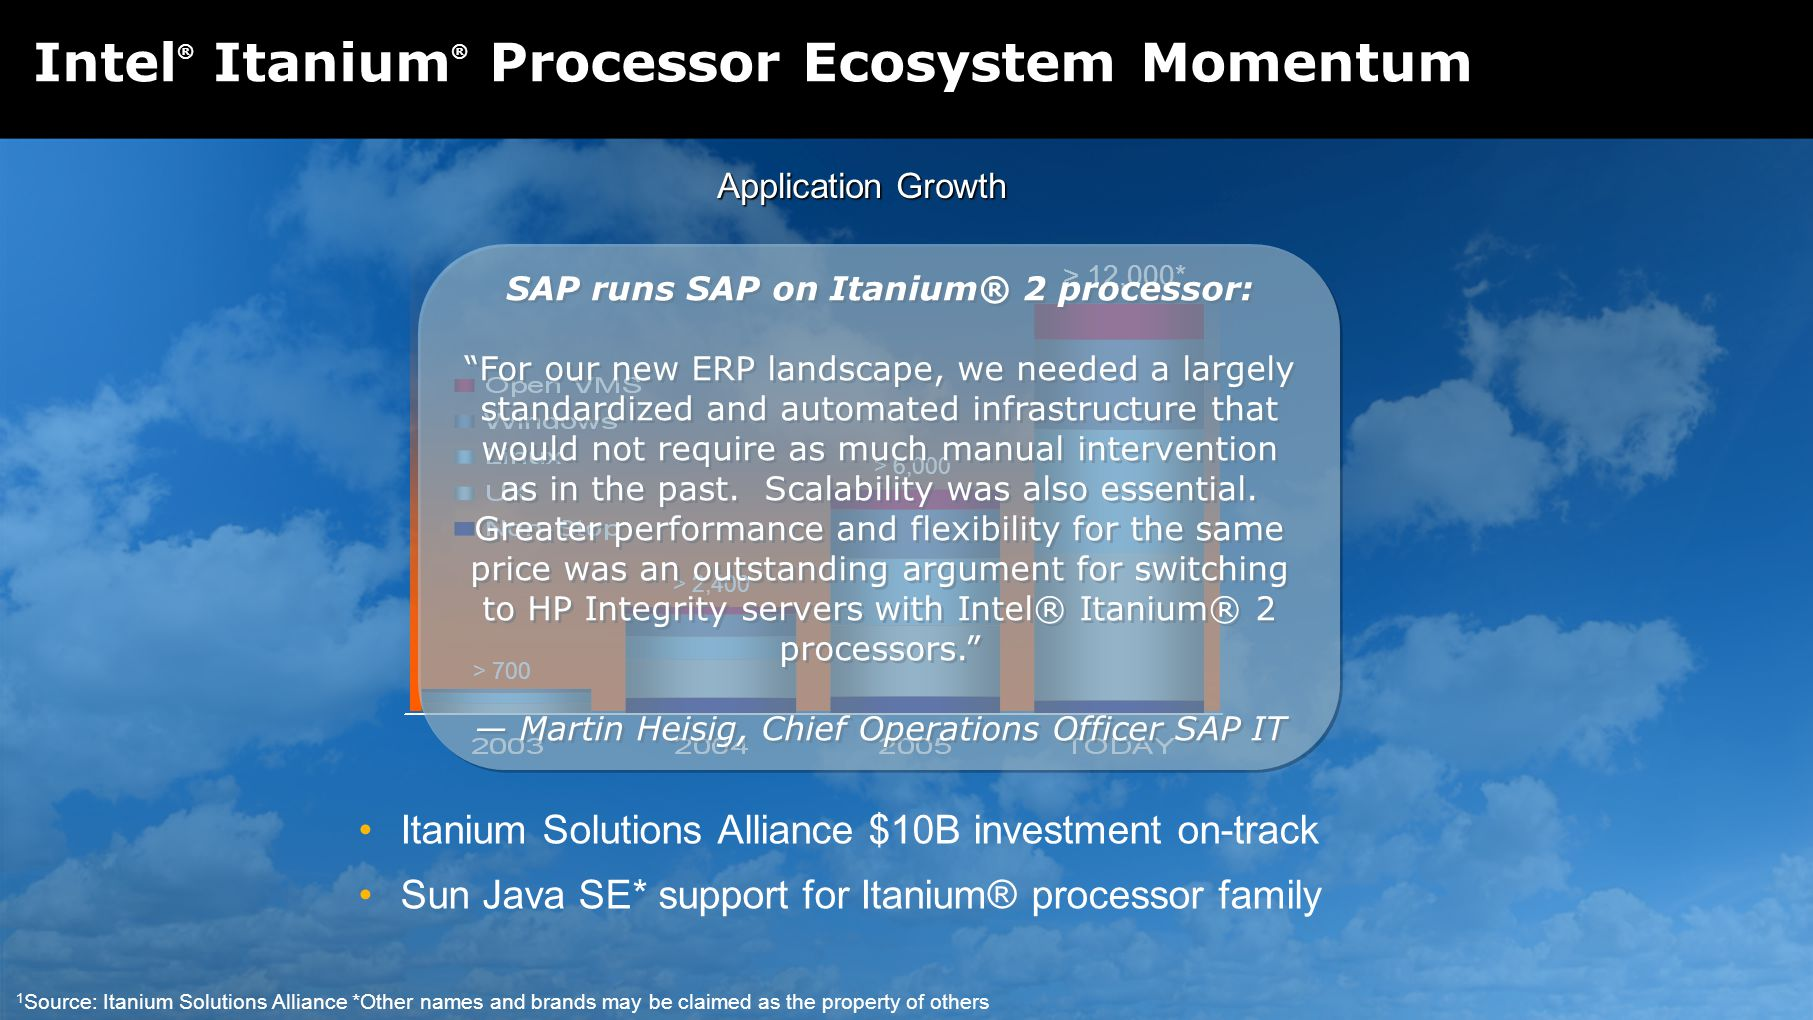 Intel ® Itanium ® Processor Ecosystem Momentum Itanium Solutions Alliance $10B investment on-track Sun Java SE* support for Itanium® processor family 1 Source: Itanium Solutions Alliance *Other names and brands may be claimed as the property of others Application Growth > 700 > 2,400 > 6,000 > 12,000* SAP runs SAP on Itanium® 2 processor: For our new ERP landscape, we needed a largely standardized and automated infrastructure that would not require as much manual intervention as in the past.